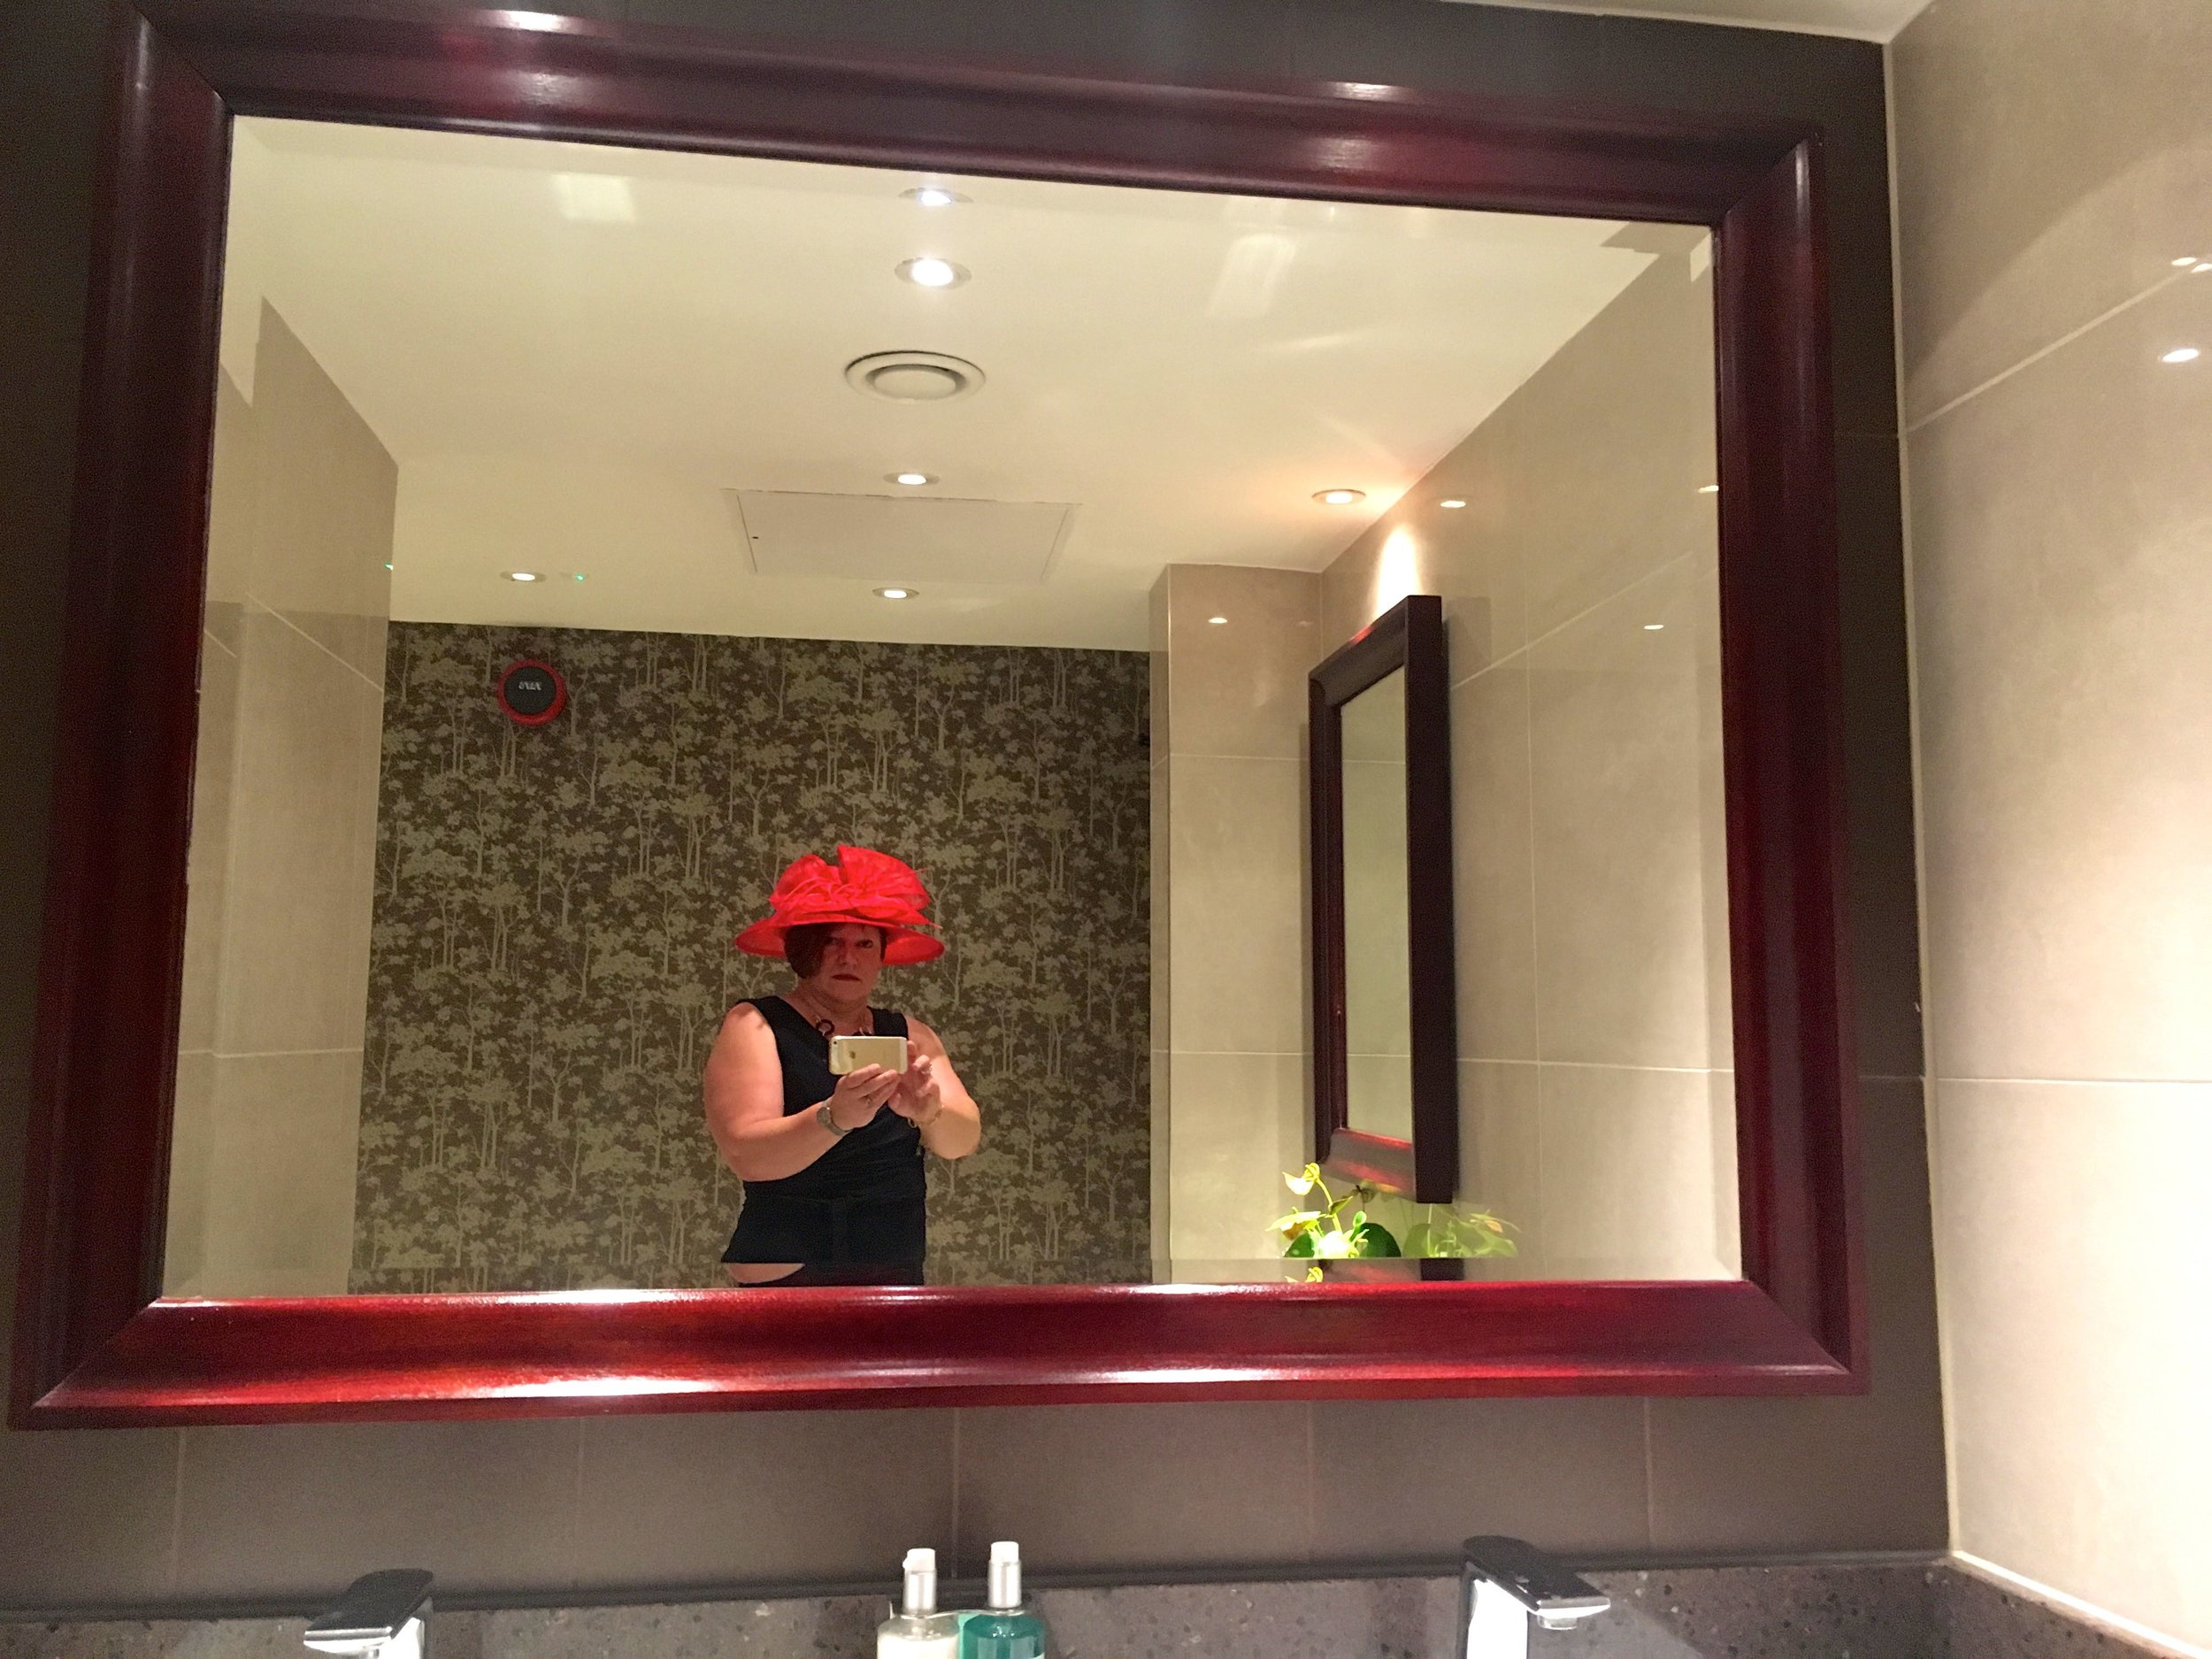 And voila, a quick change in the loos at The Grosvenor